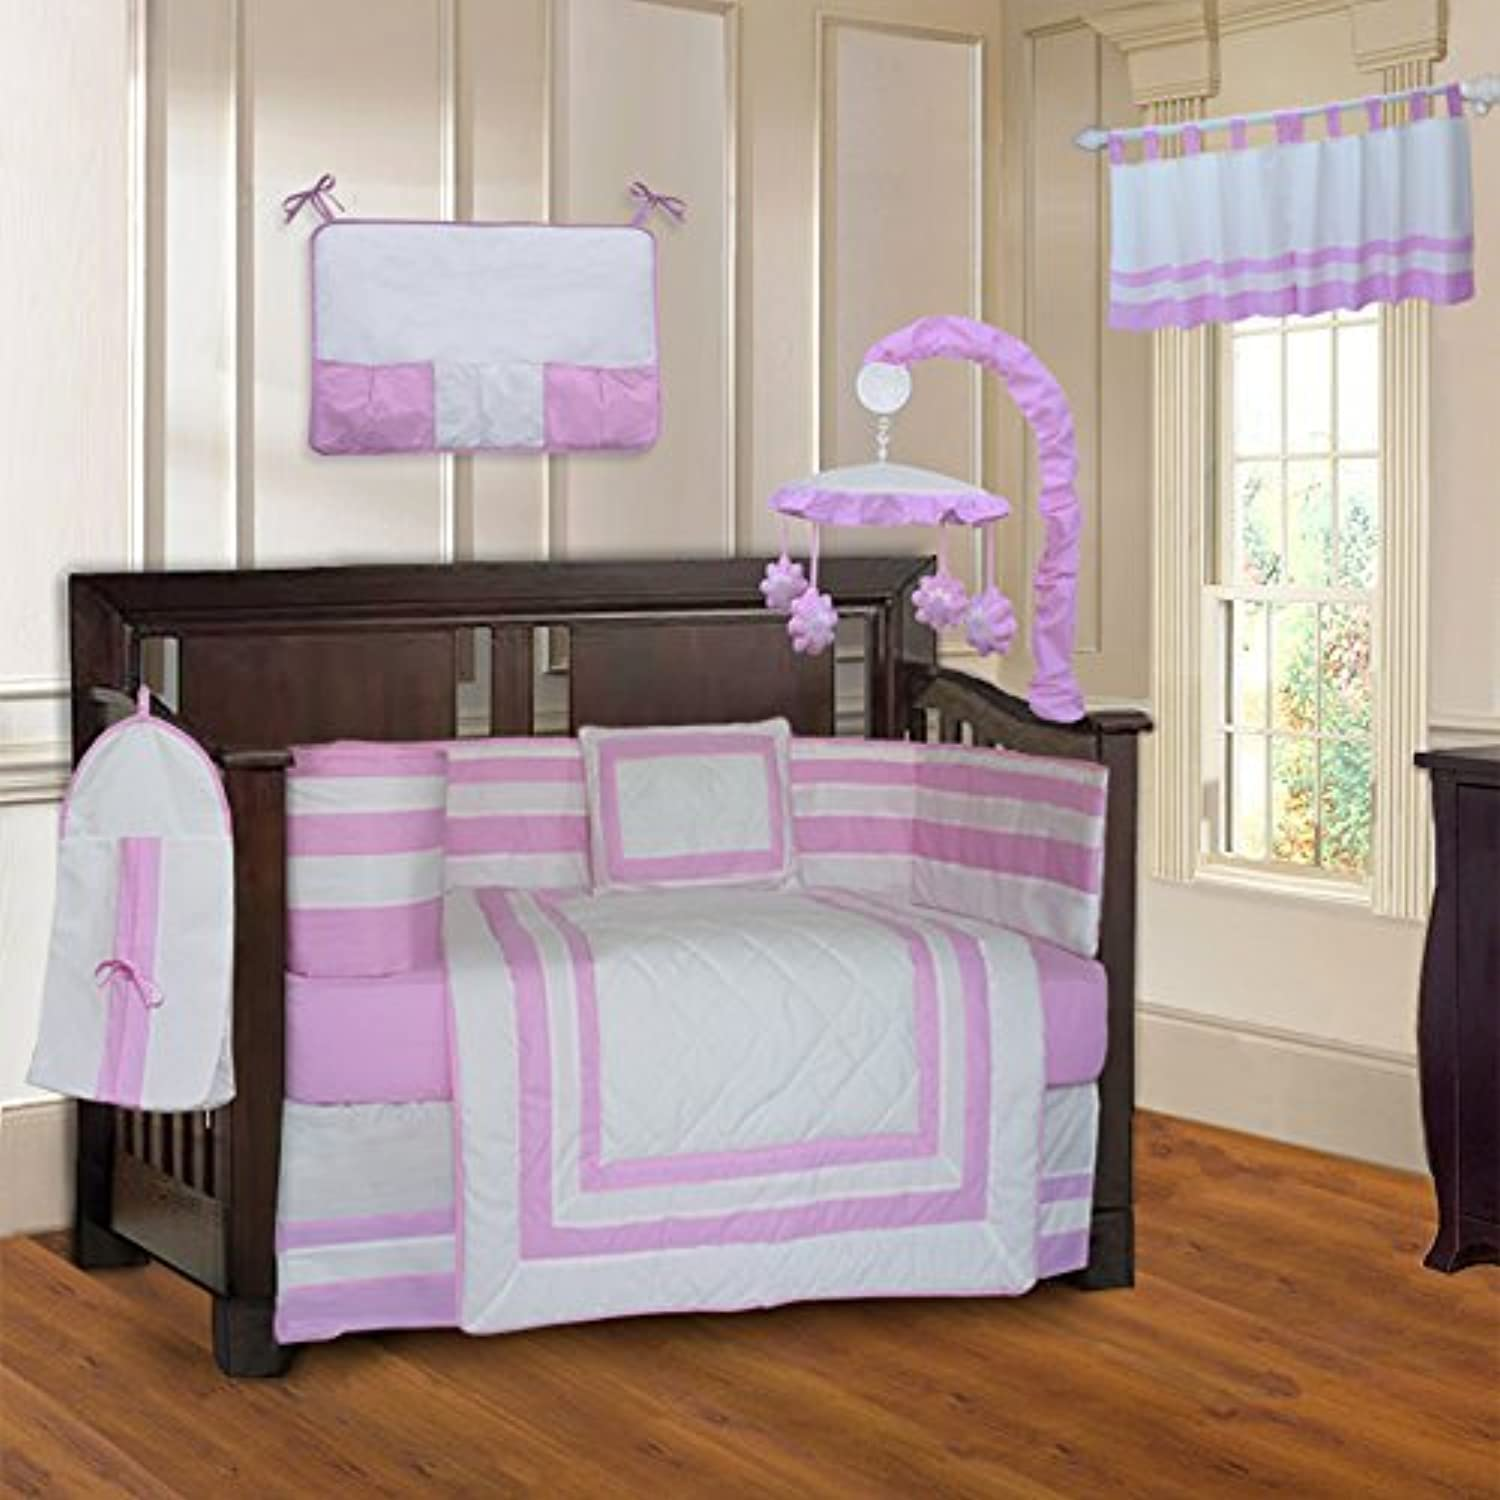 BabyFad Modern Quilted Pink 10 Piece Baby Crib Bedding Set [並行輸入品]